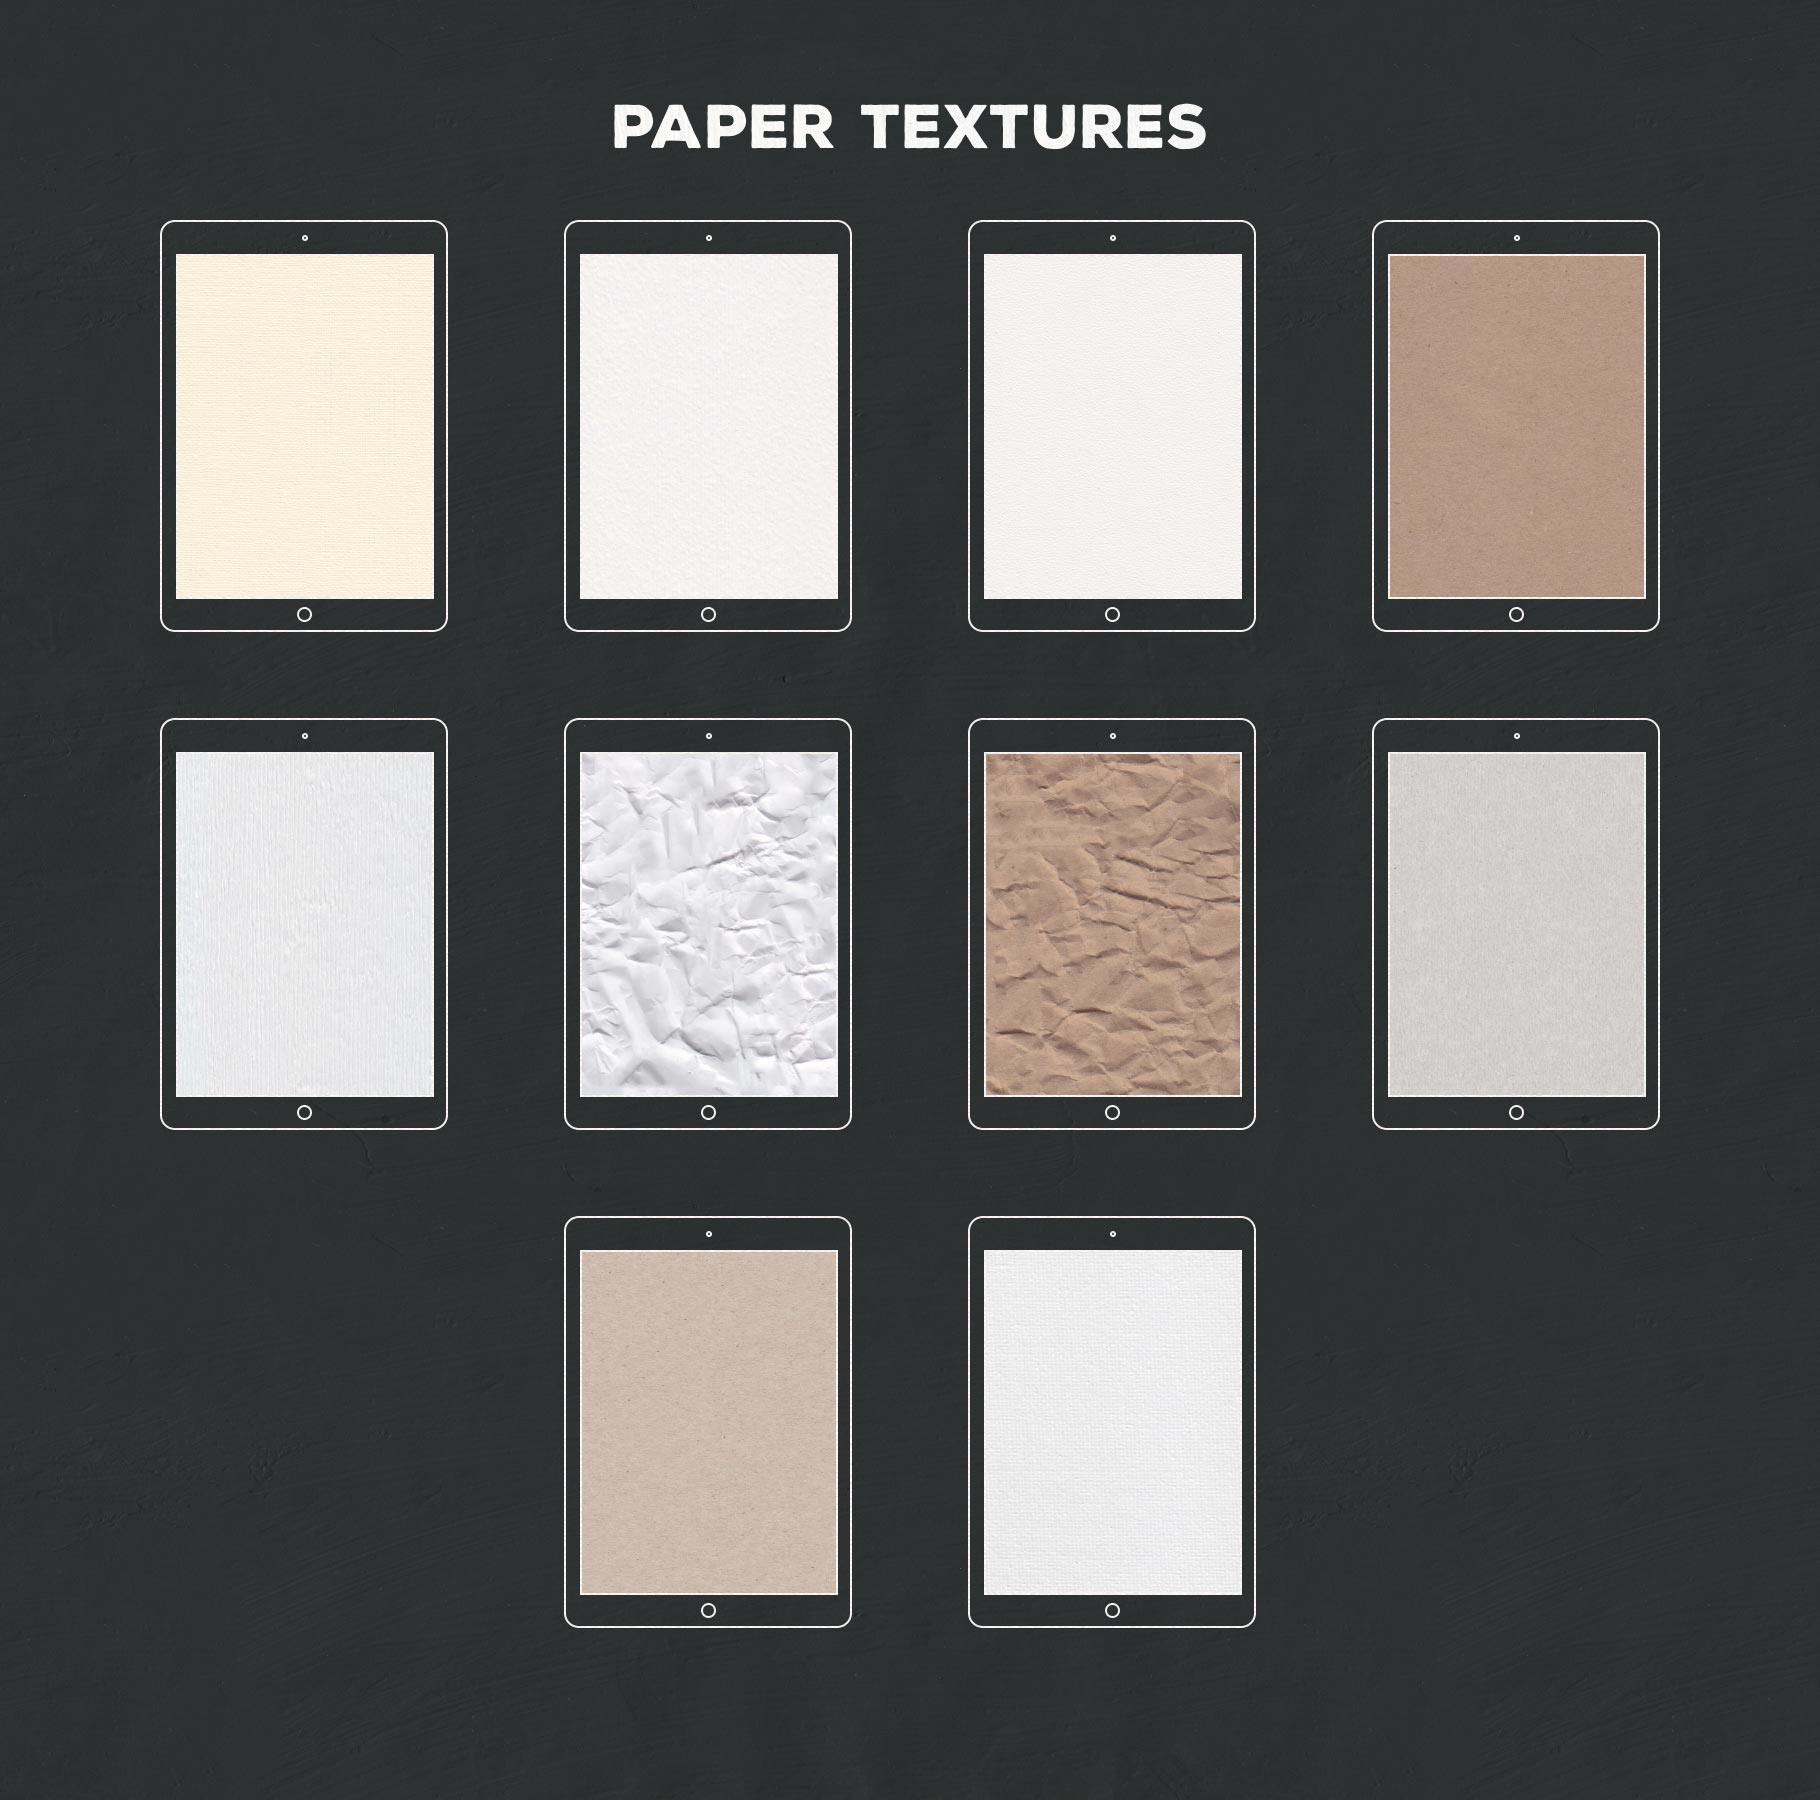 Affinity Designer Background Paper Textures